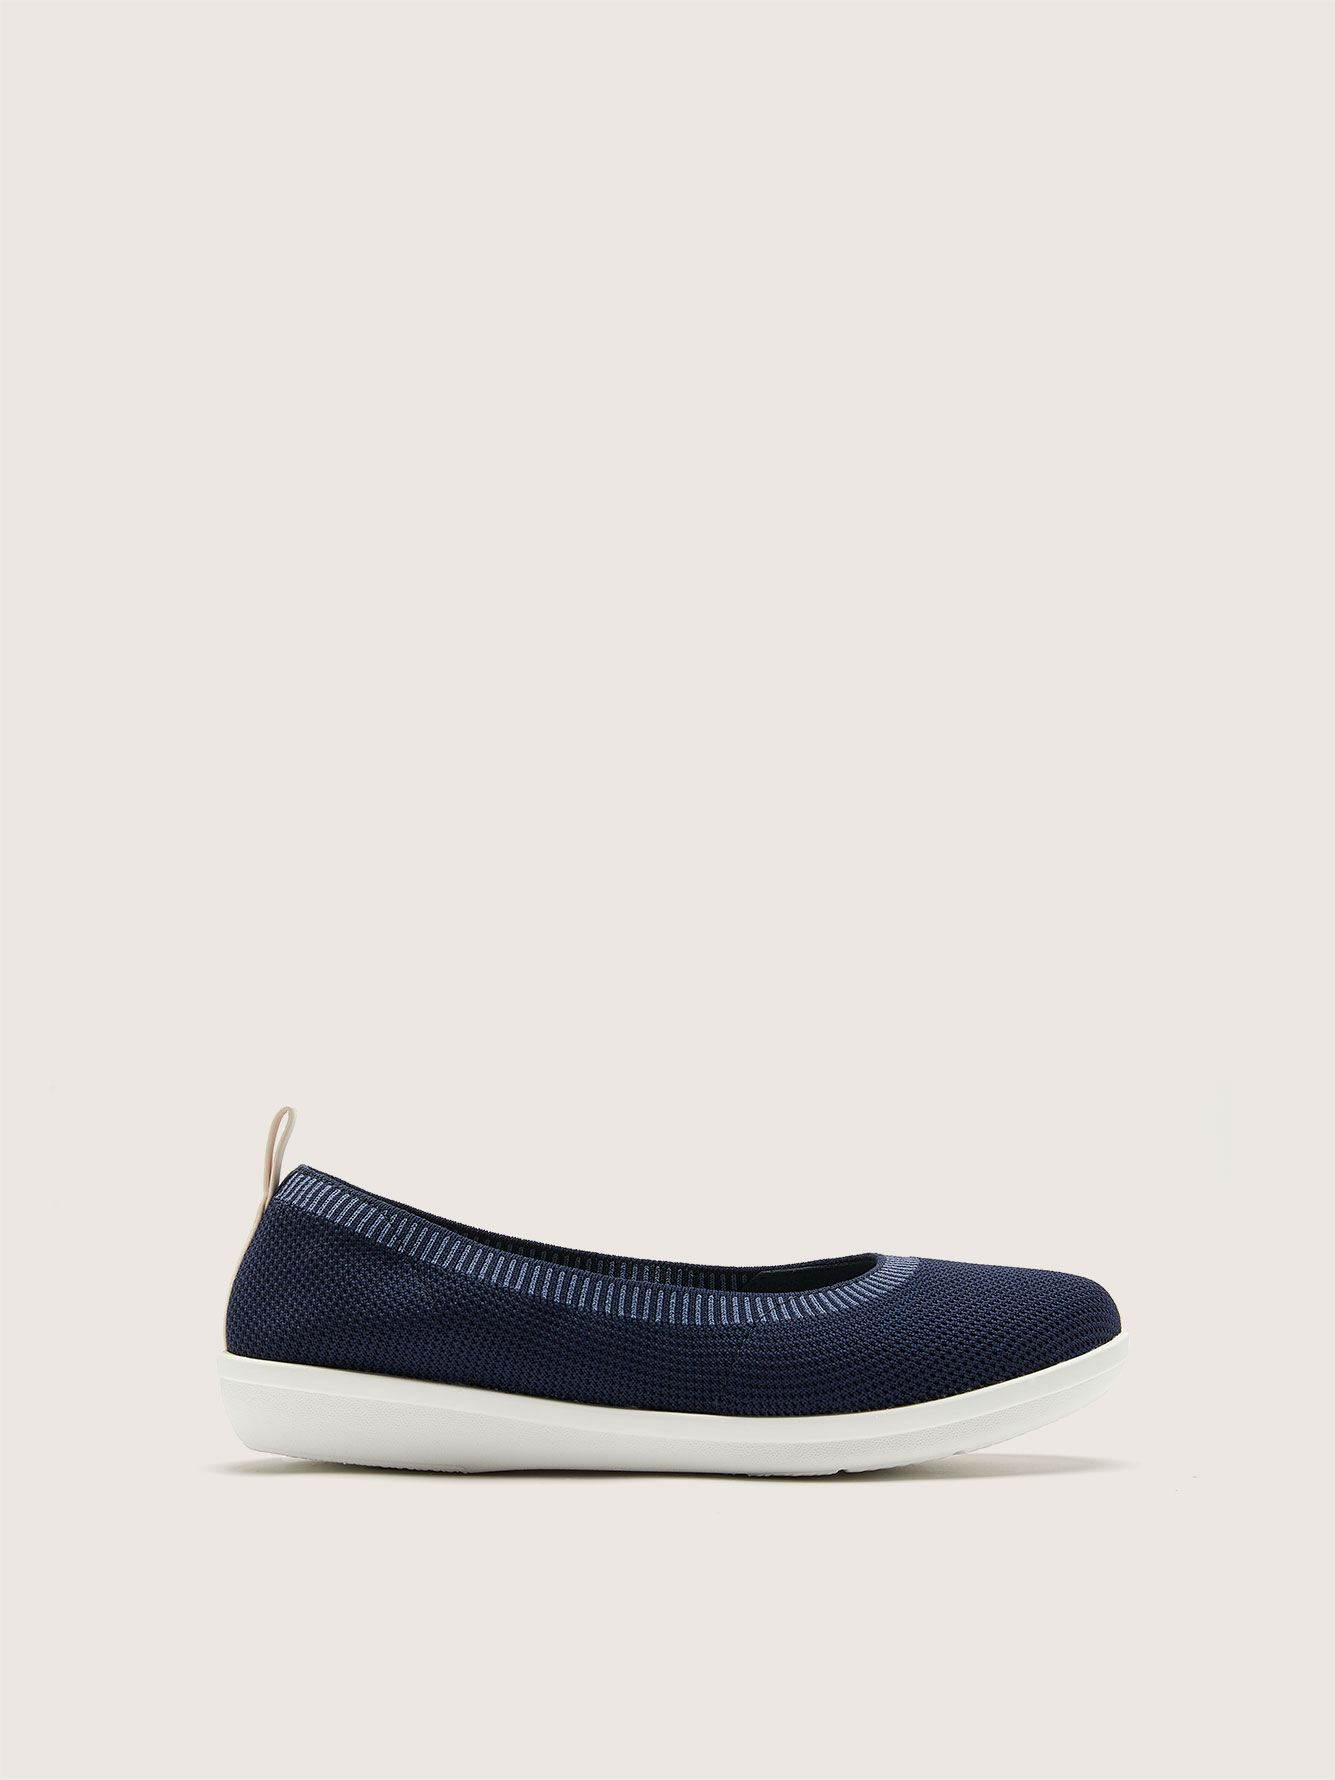 Chaussure ballerine Ayla Paige, pied large - Clarks